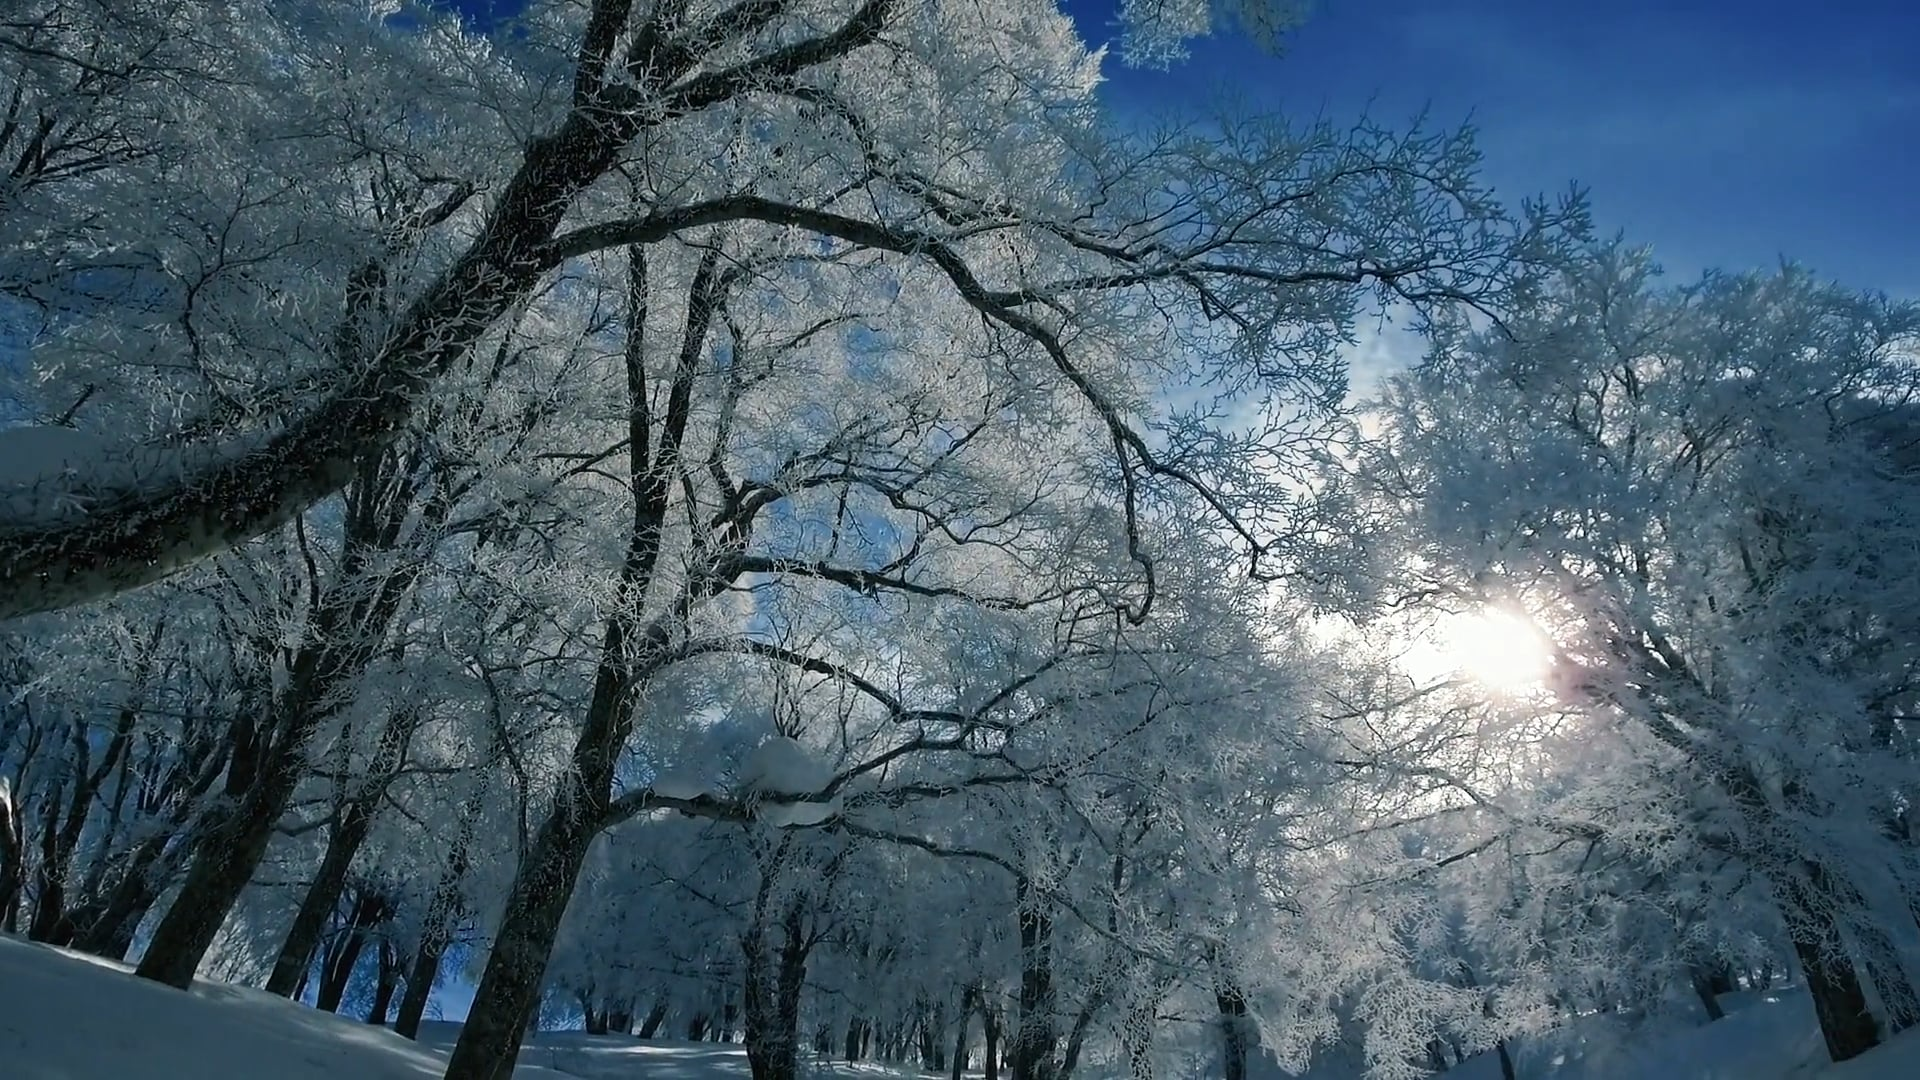 One day in winter...